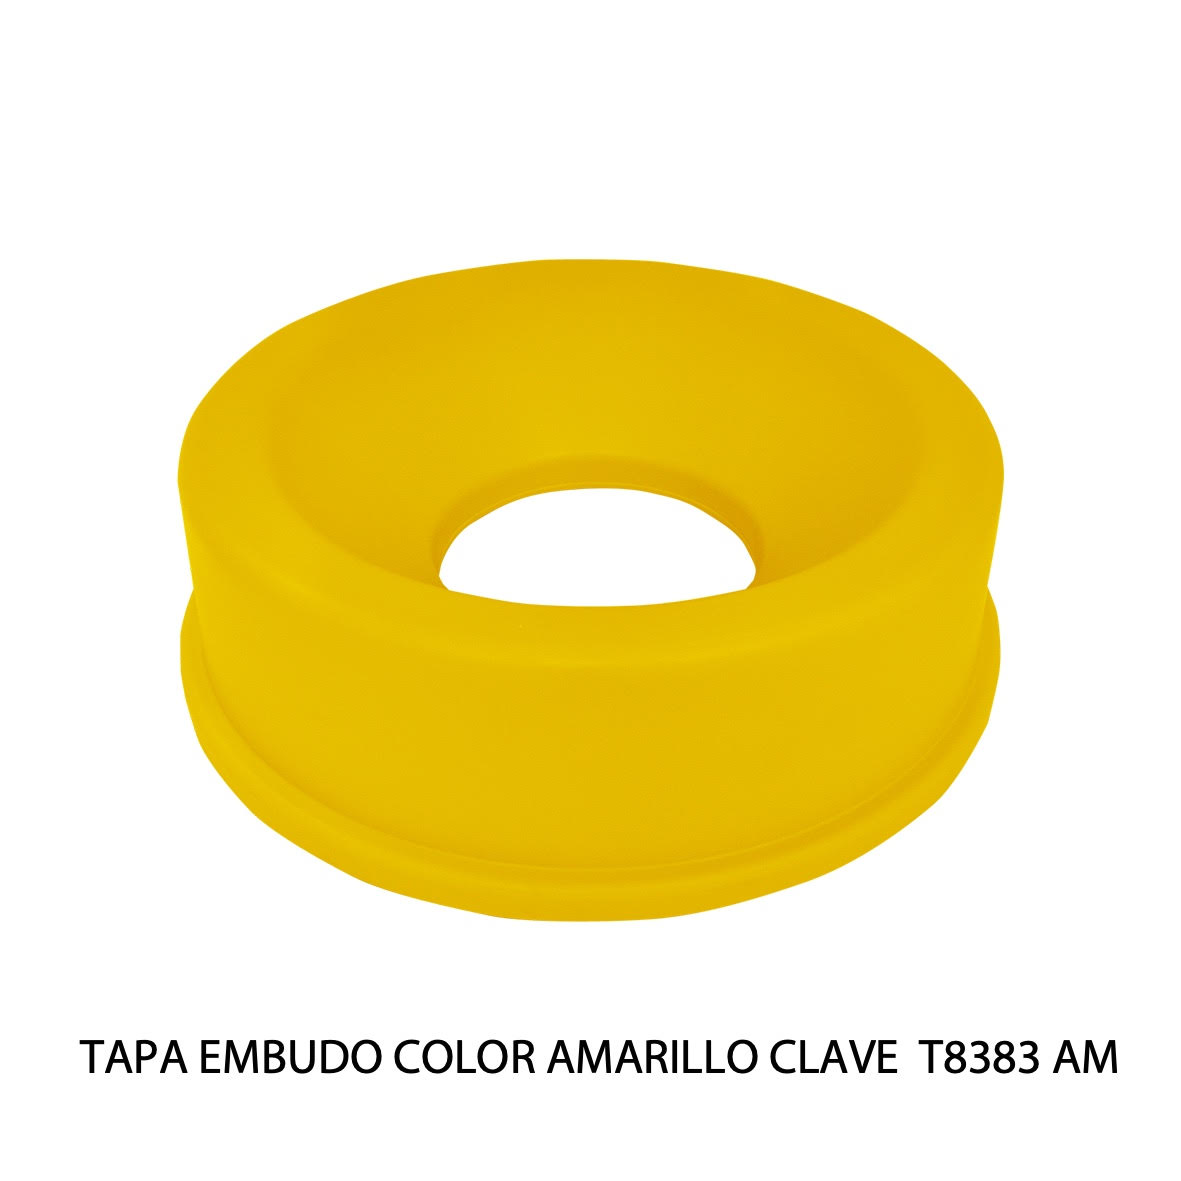 Tapa embudo color amarillo clave T8383 AM de Sablón